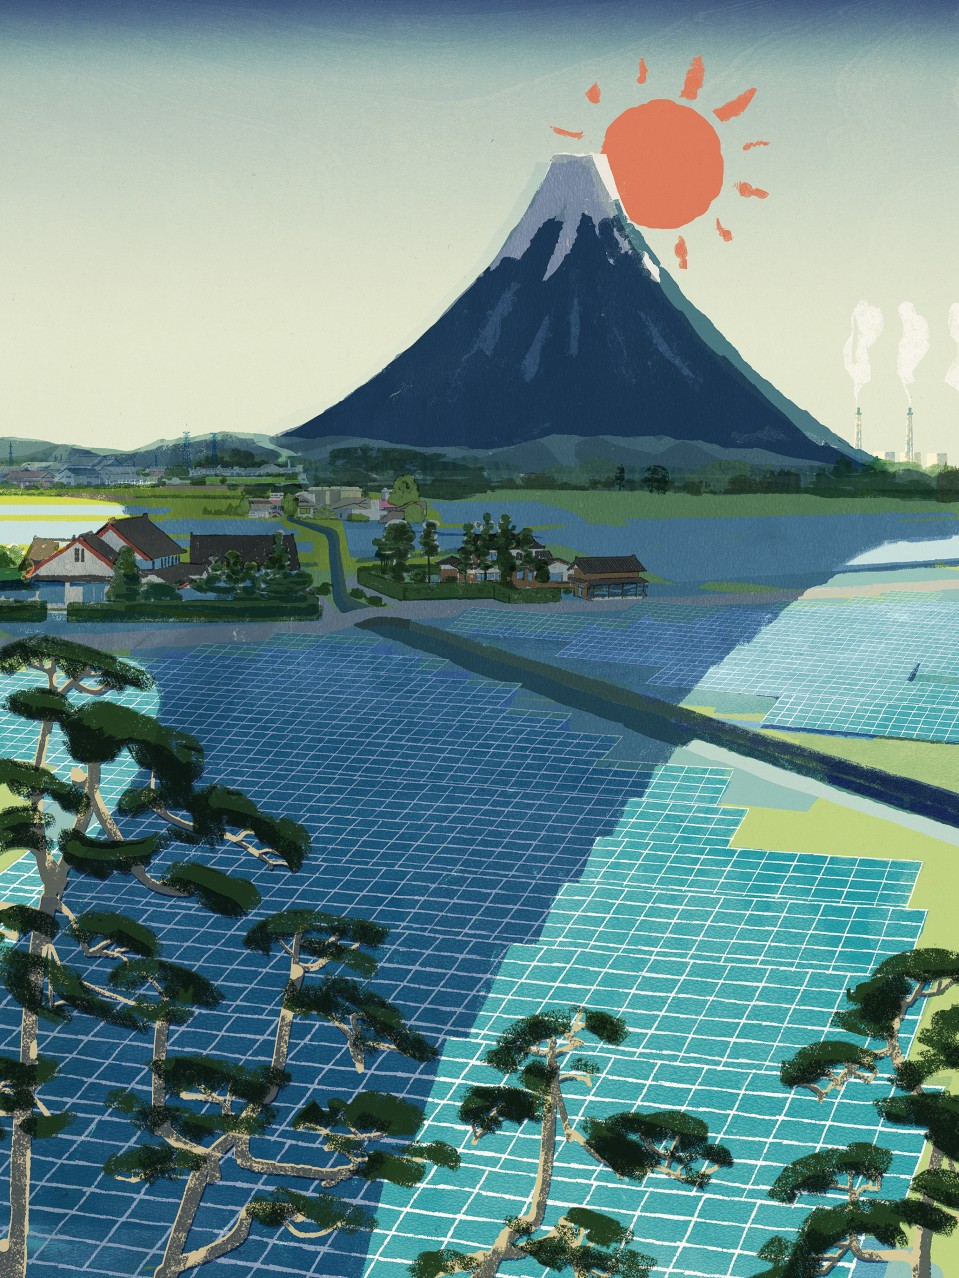 Can Japan Recapture Its Solar Power? - MIT Technology Review